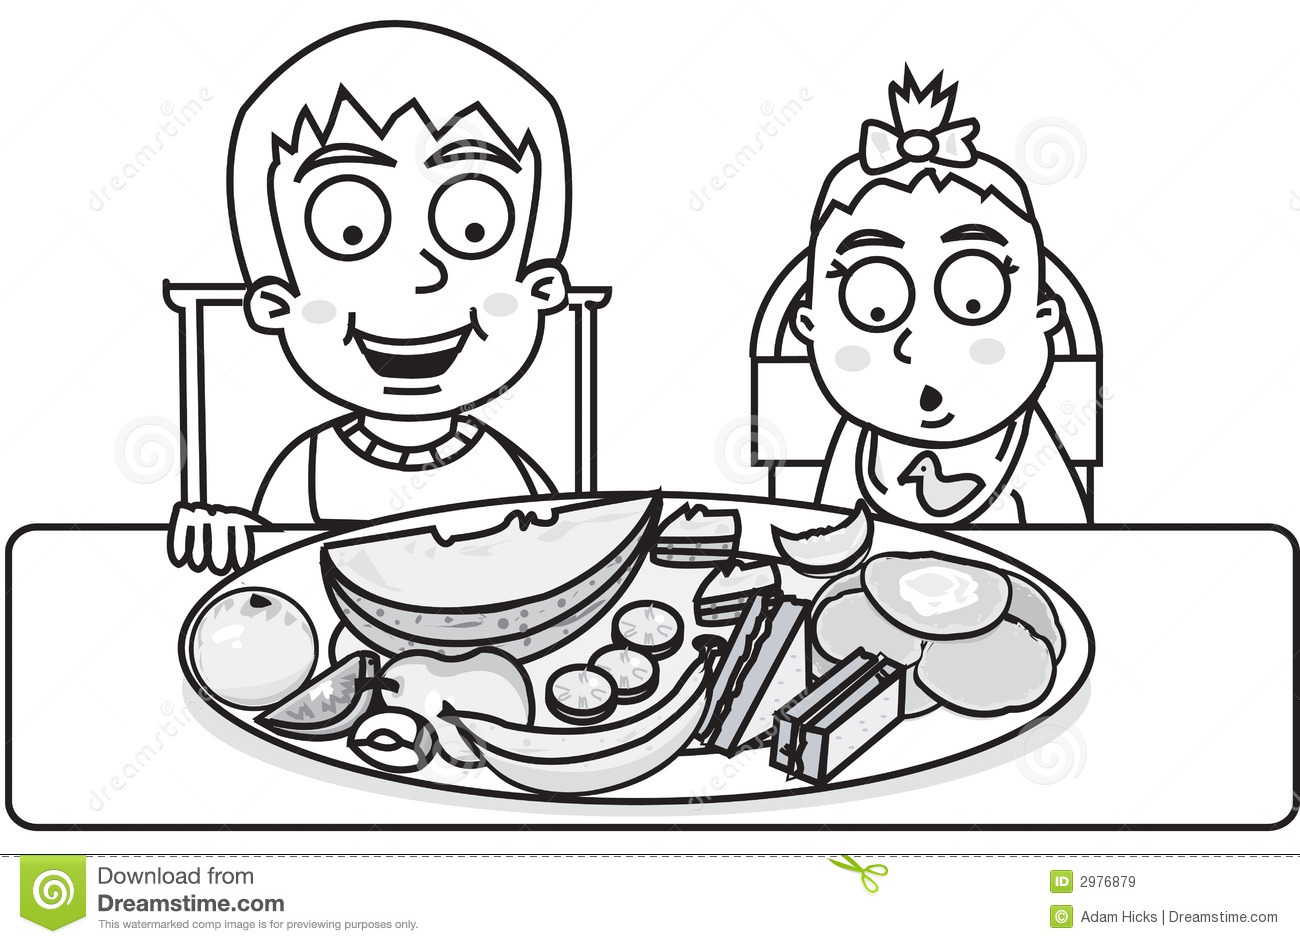 Children Ready To Eat Royalty Free Stock Images